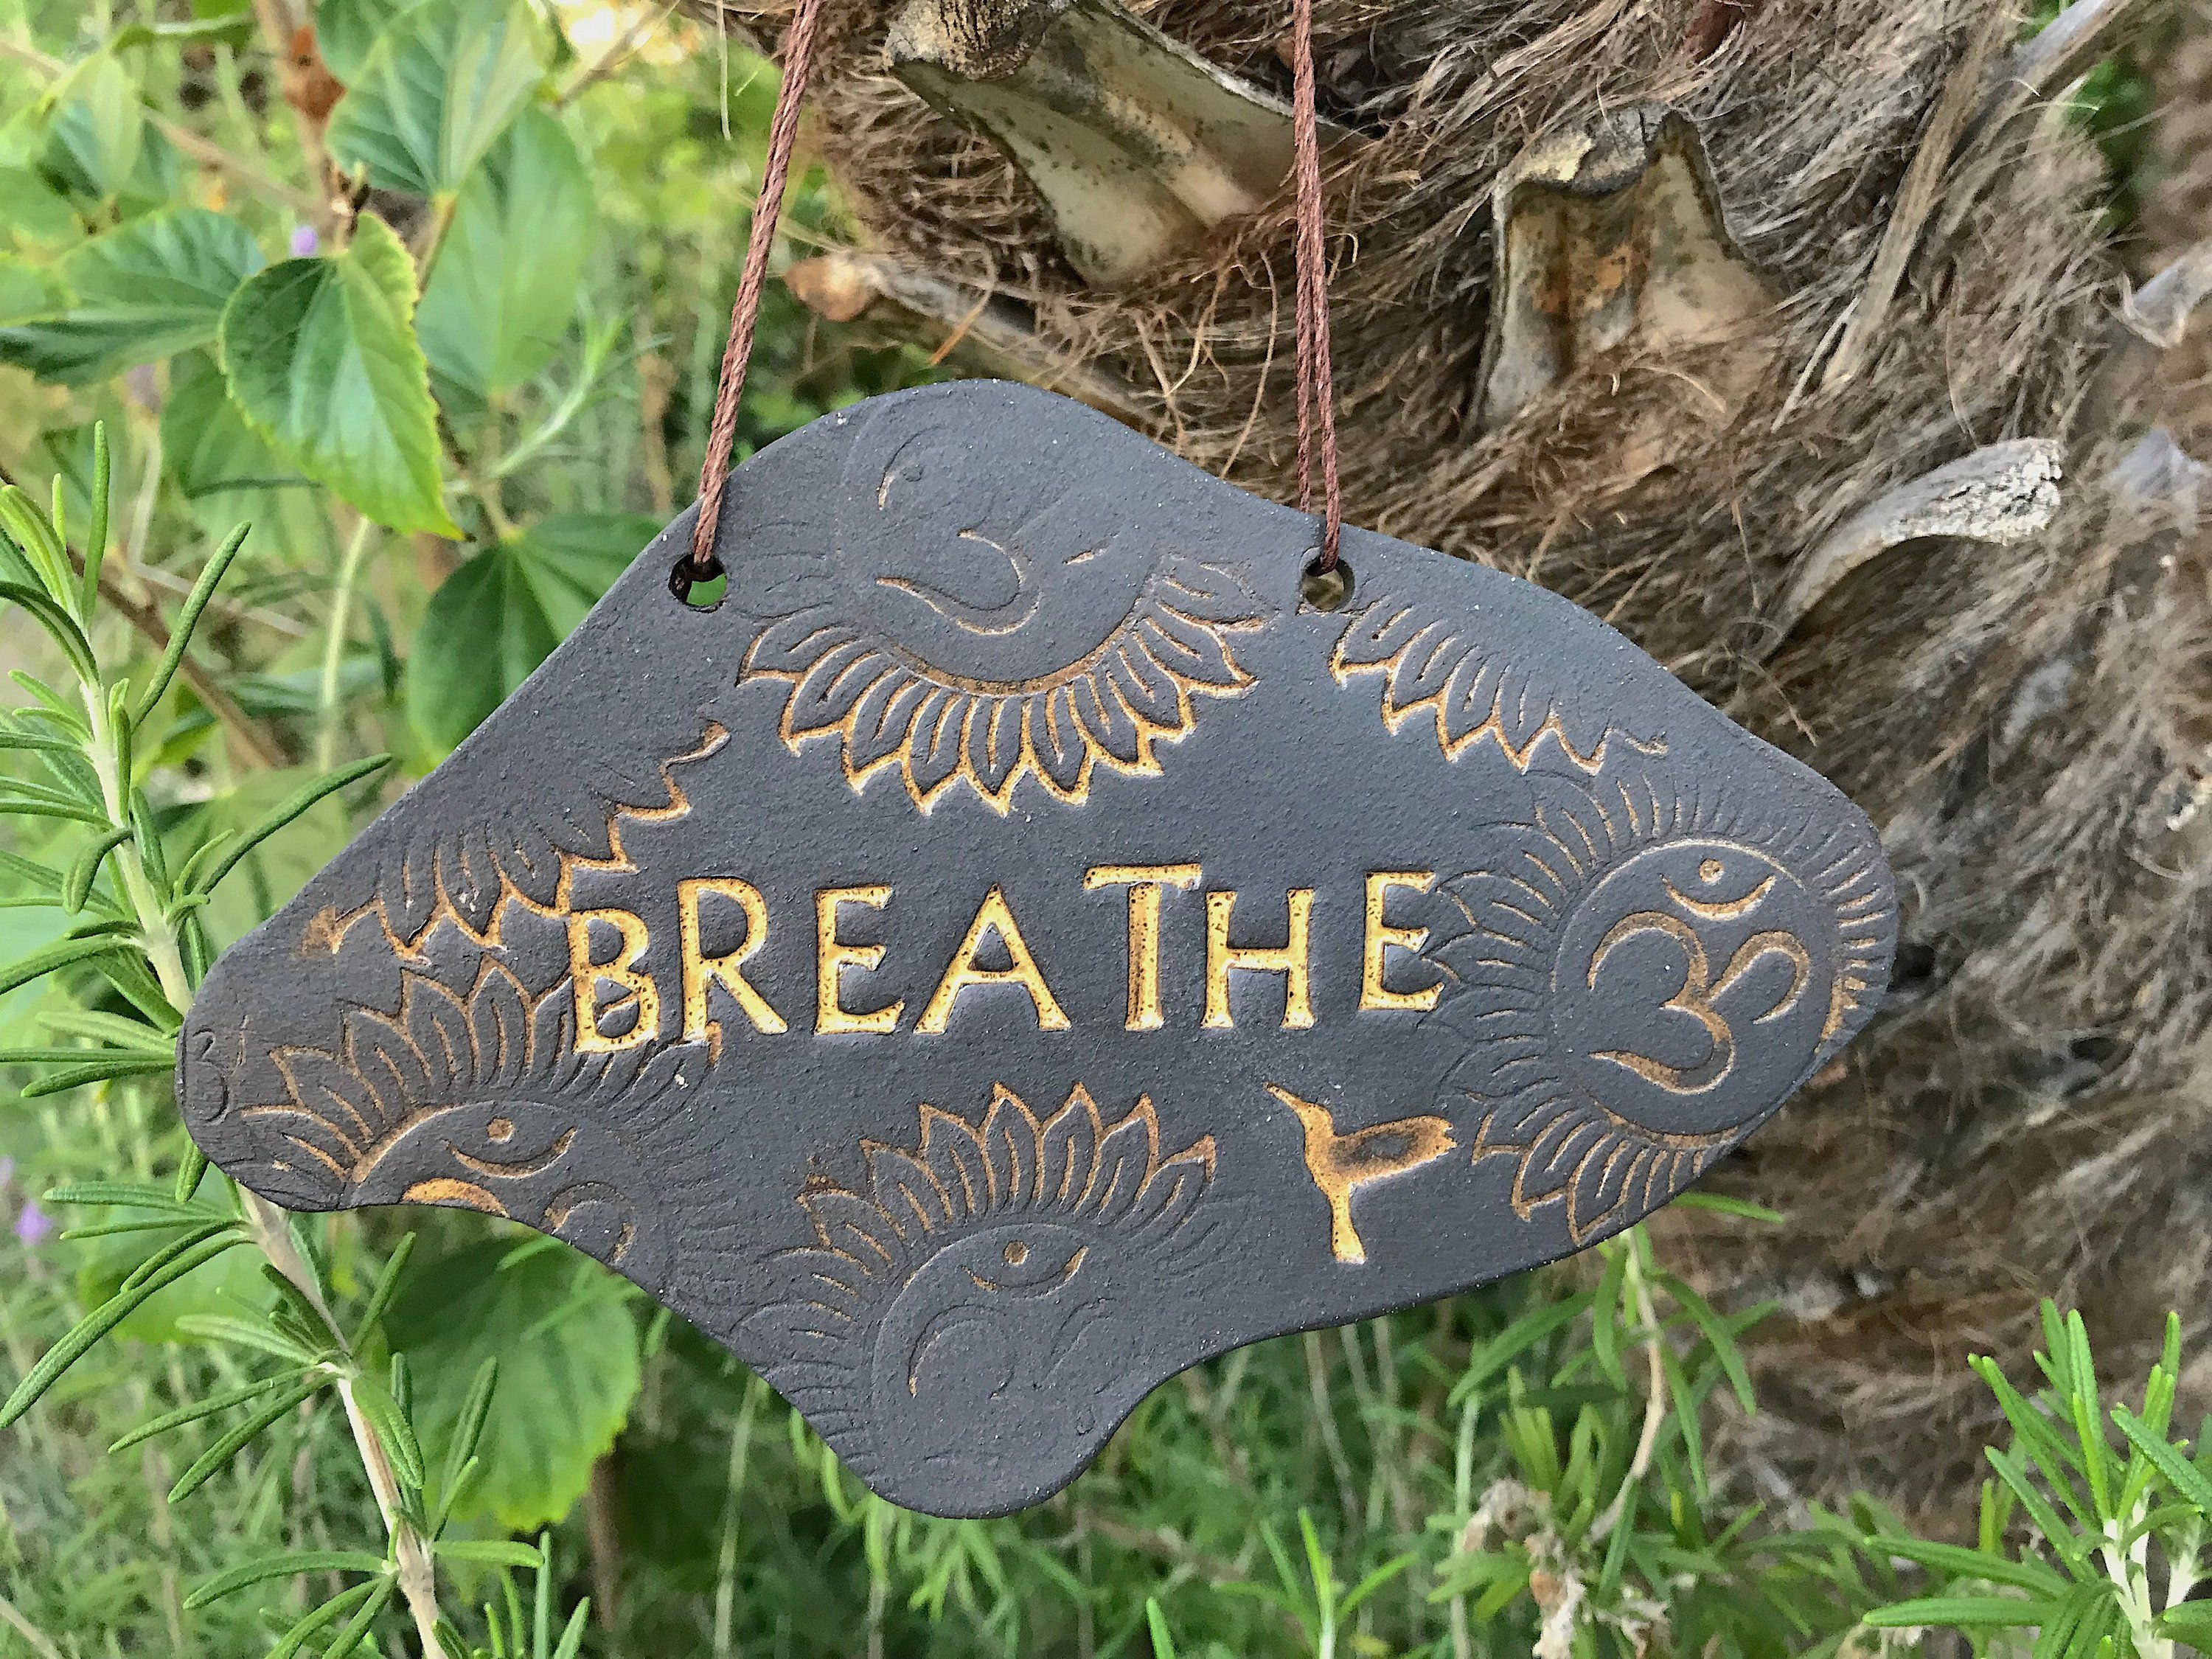 Om breathe sign ceramic wall hanging sign inspirational plaque wall